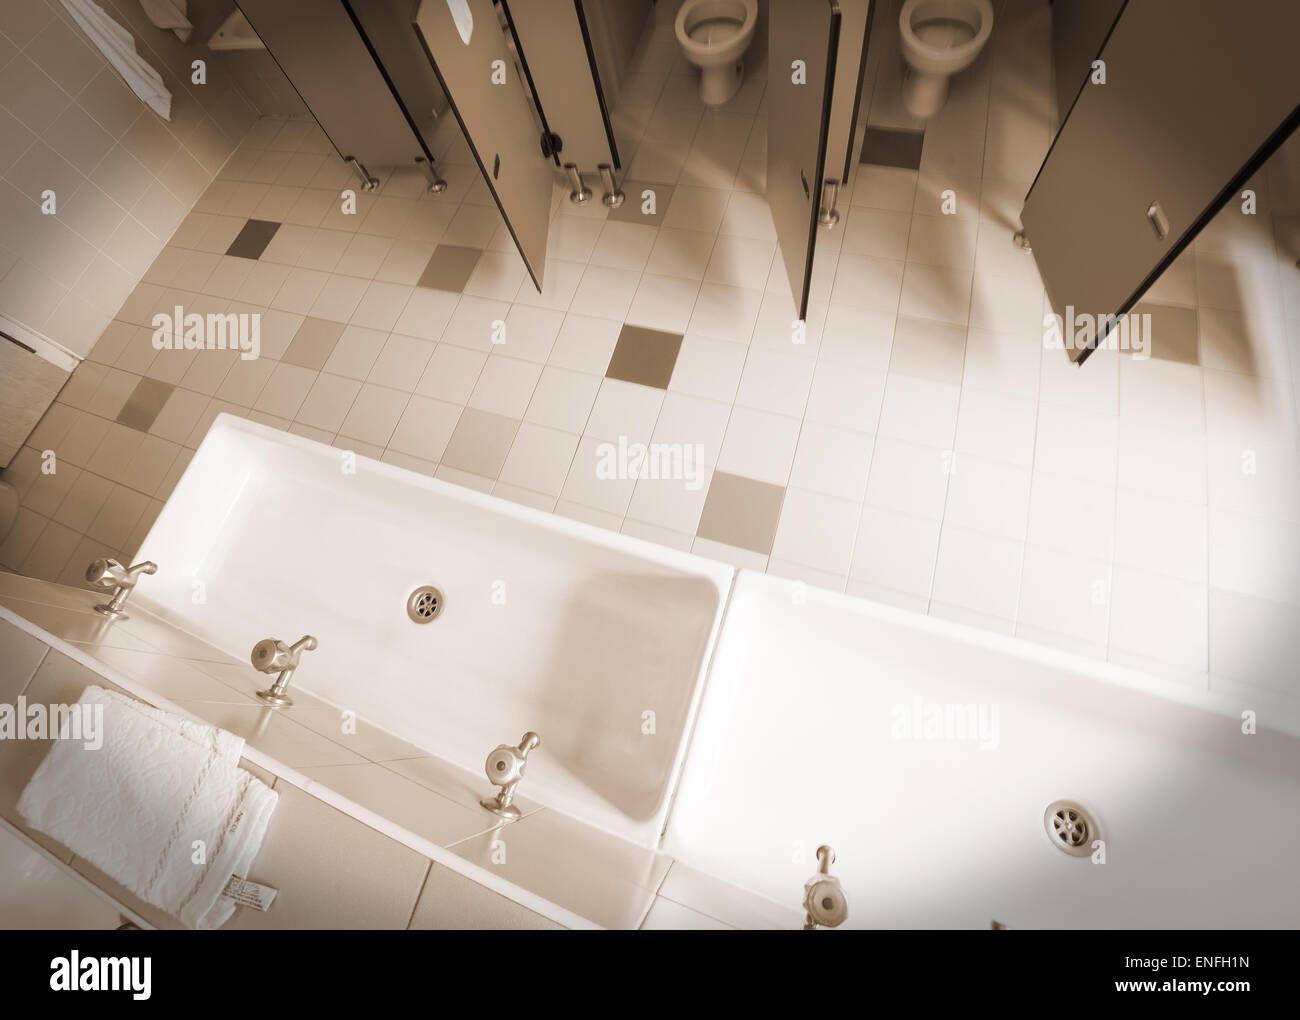 the bathroom nursery school photographed from above with speia effect - Stock Image